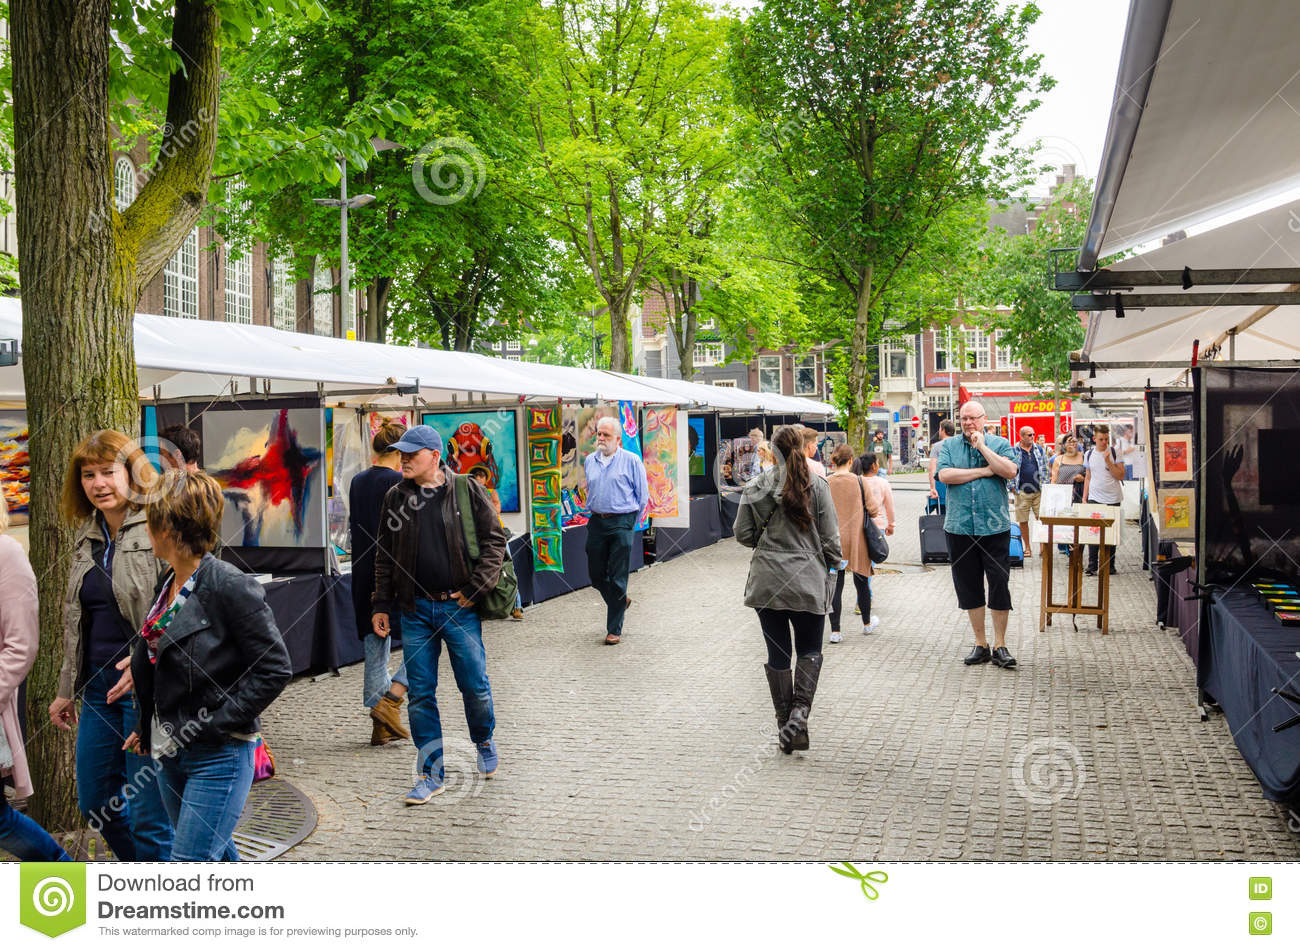 People Strolling around a Street Market in Amsterdam City Centre